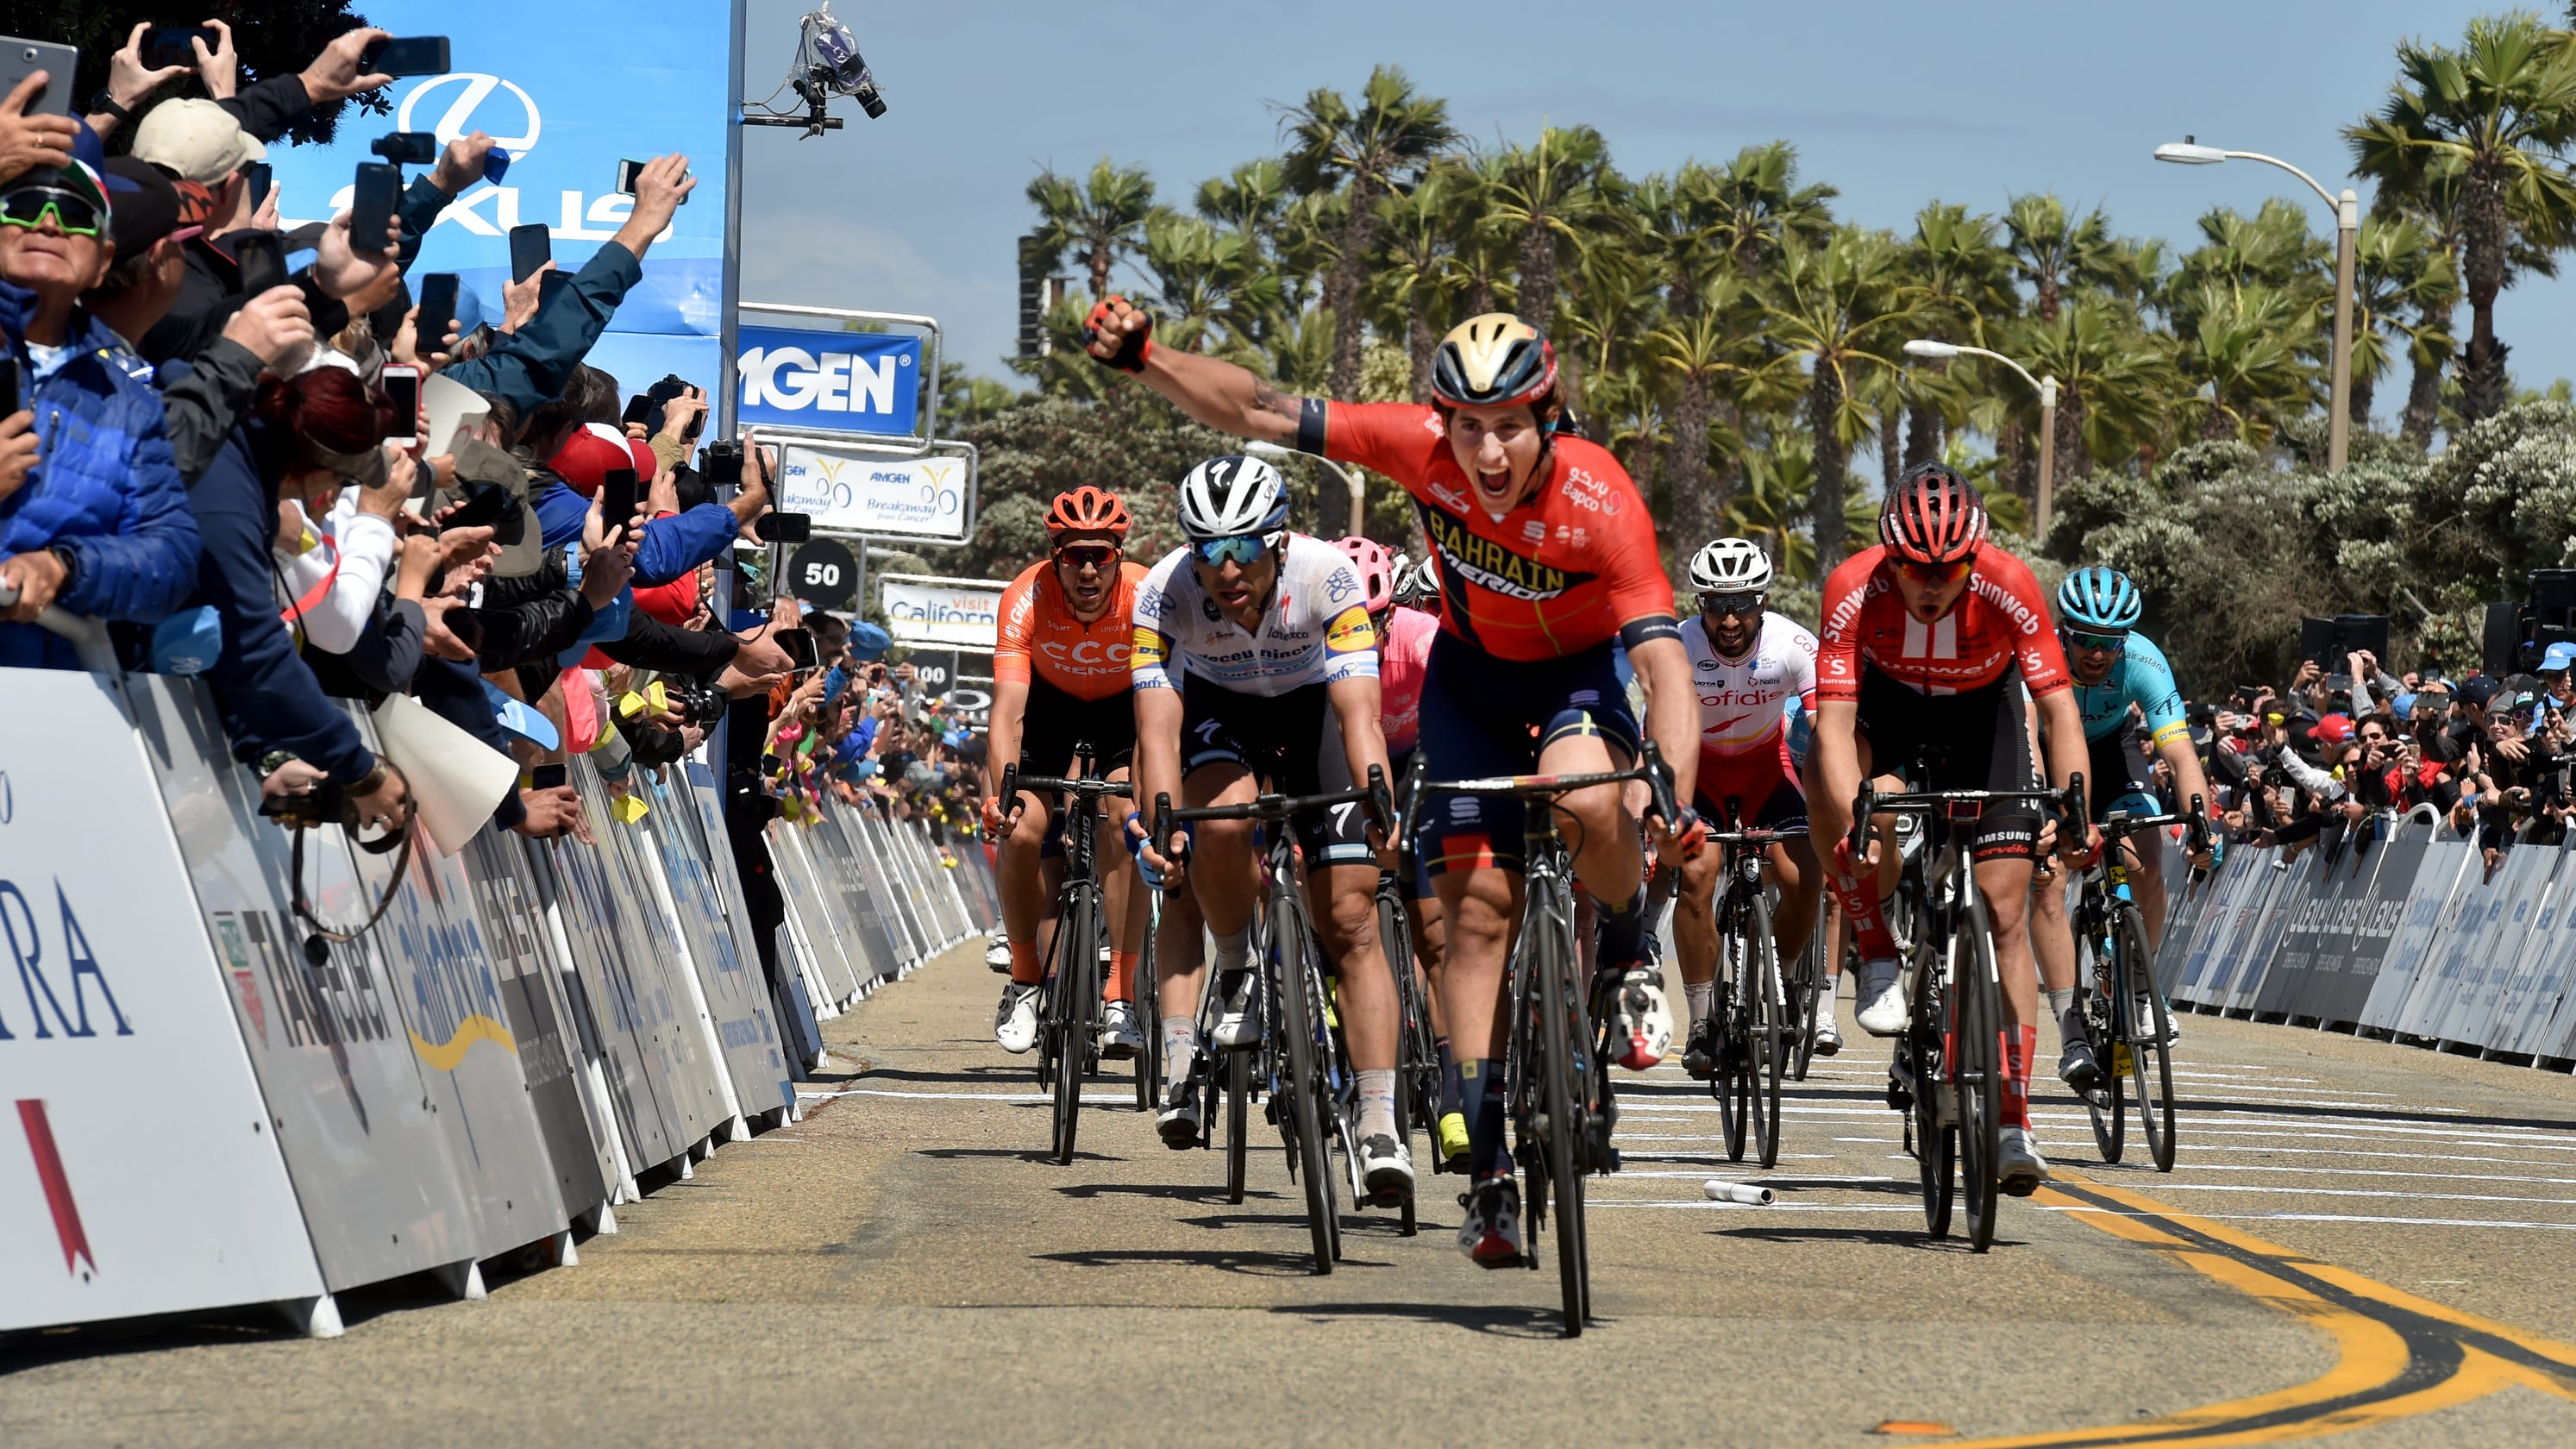 Amgen Tour Of California 2020.Amgen Tour Of California Cycling Race Will Not Be Held In 2020